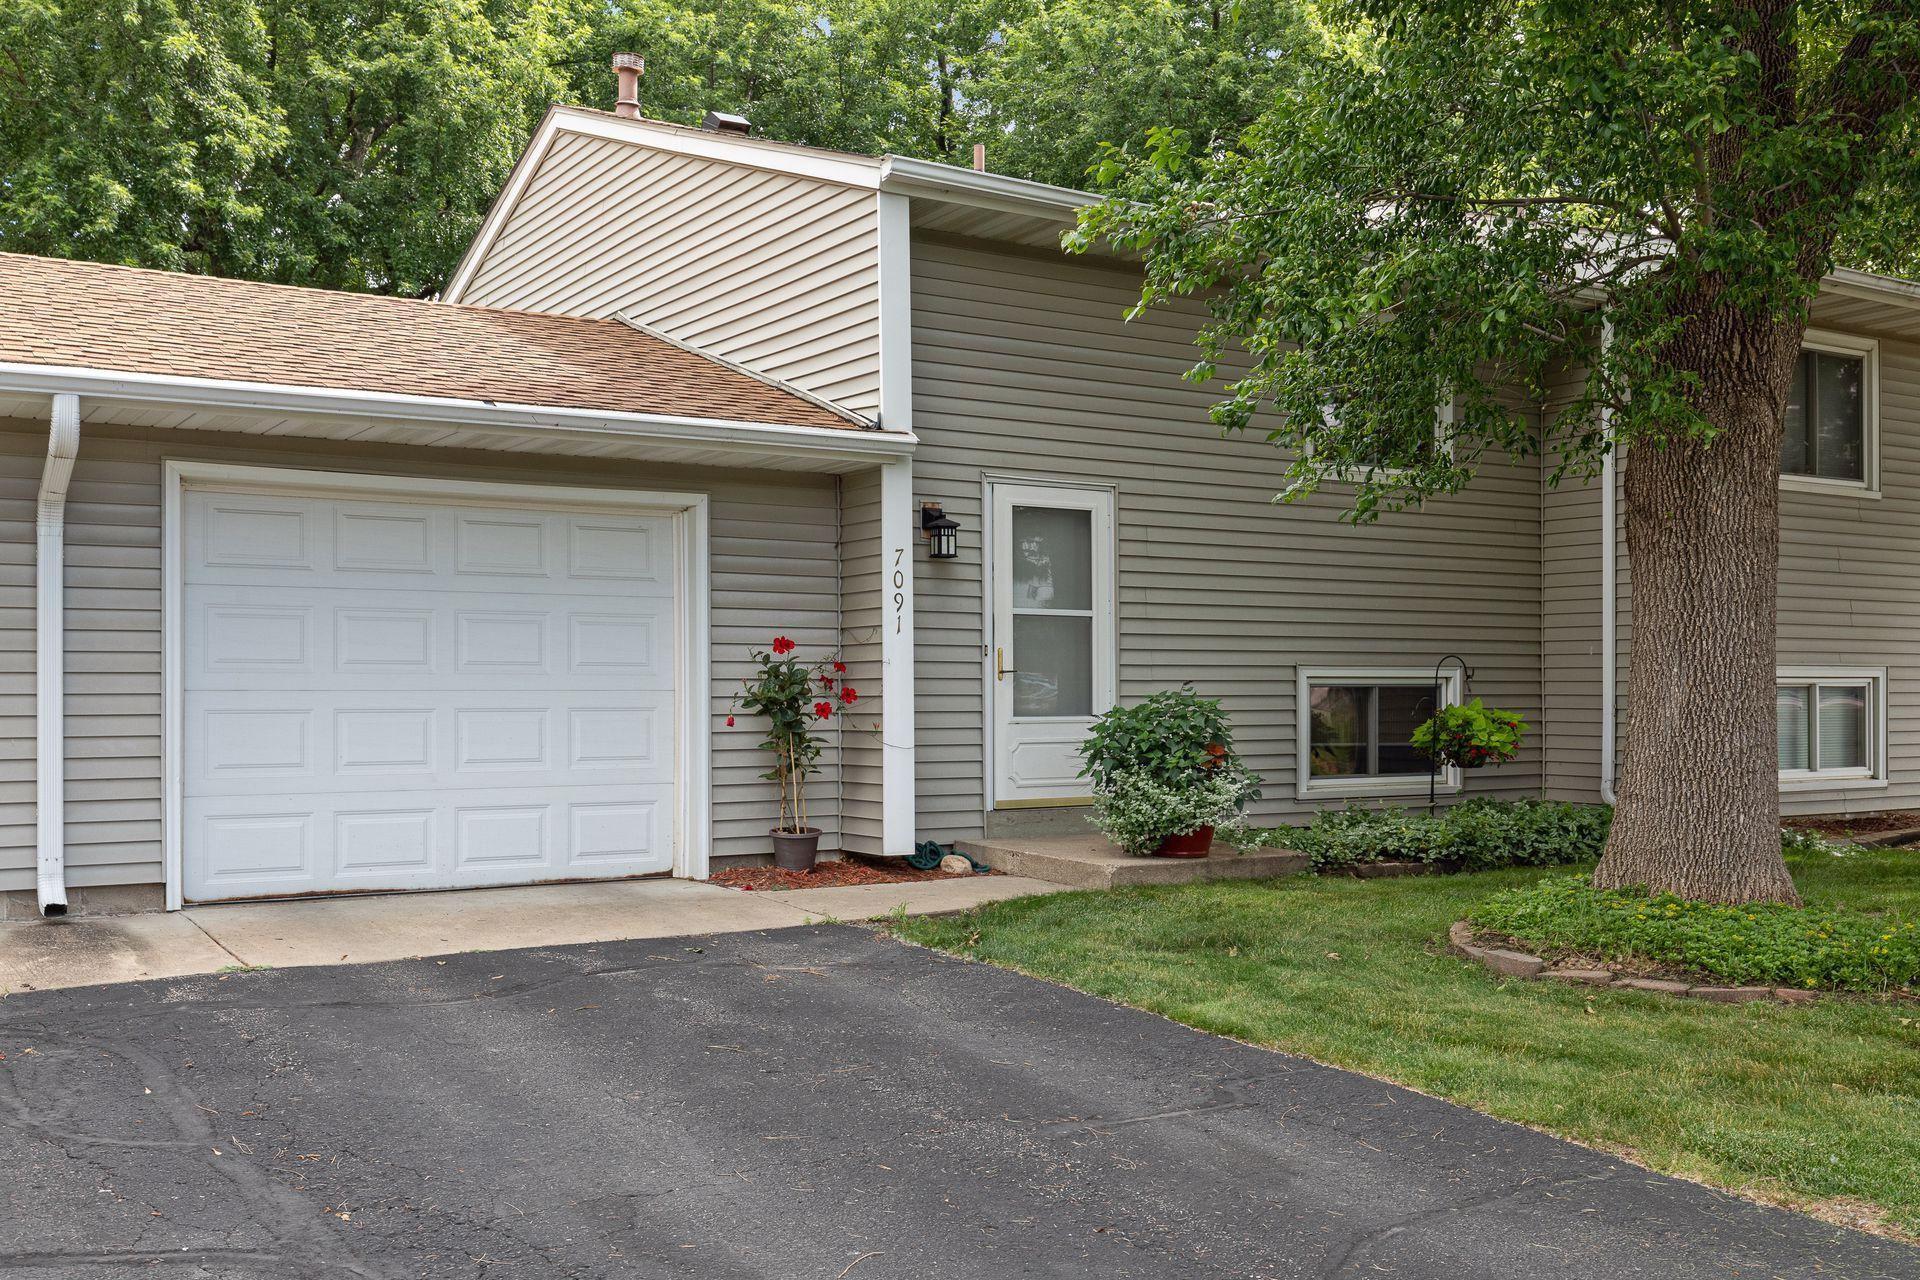 7091 146th W Property Photo - Apple Valley, MN real estate listing